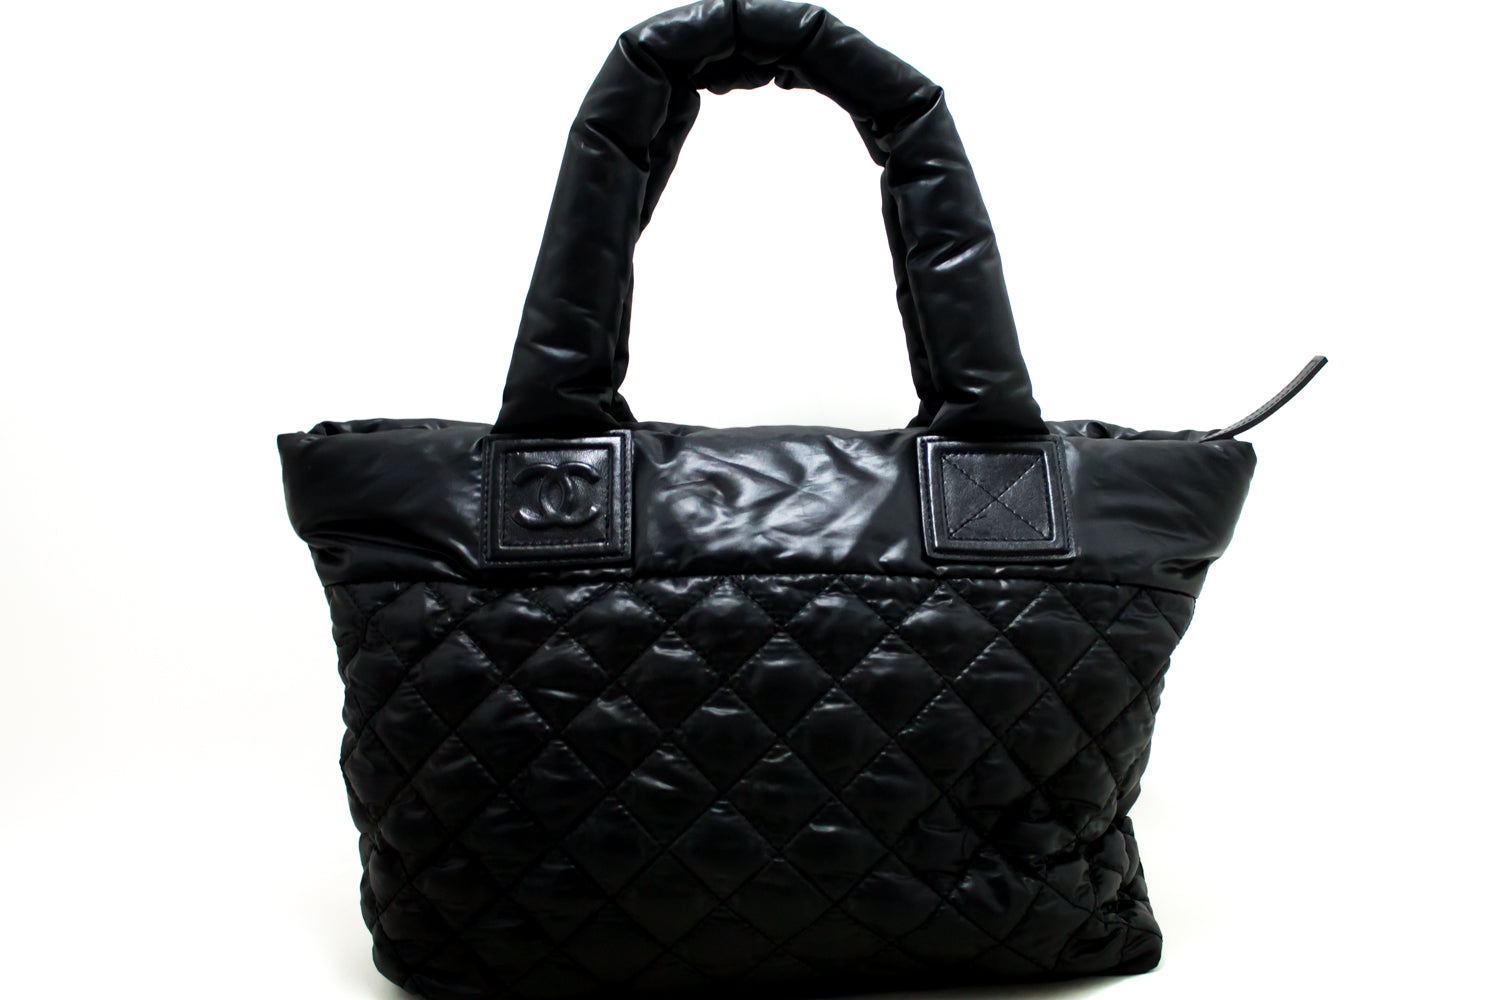 ... CHANEL Coco Cocoon Nylon Large Tote Bag Black Bordeaux Reversible n52  ... 149b96a8b9981